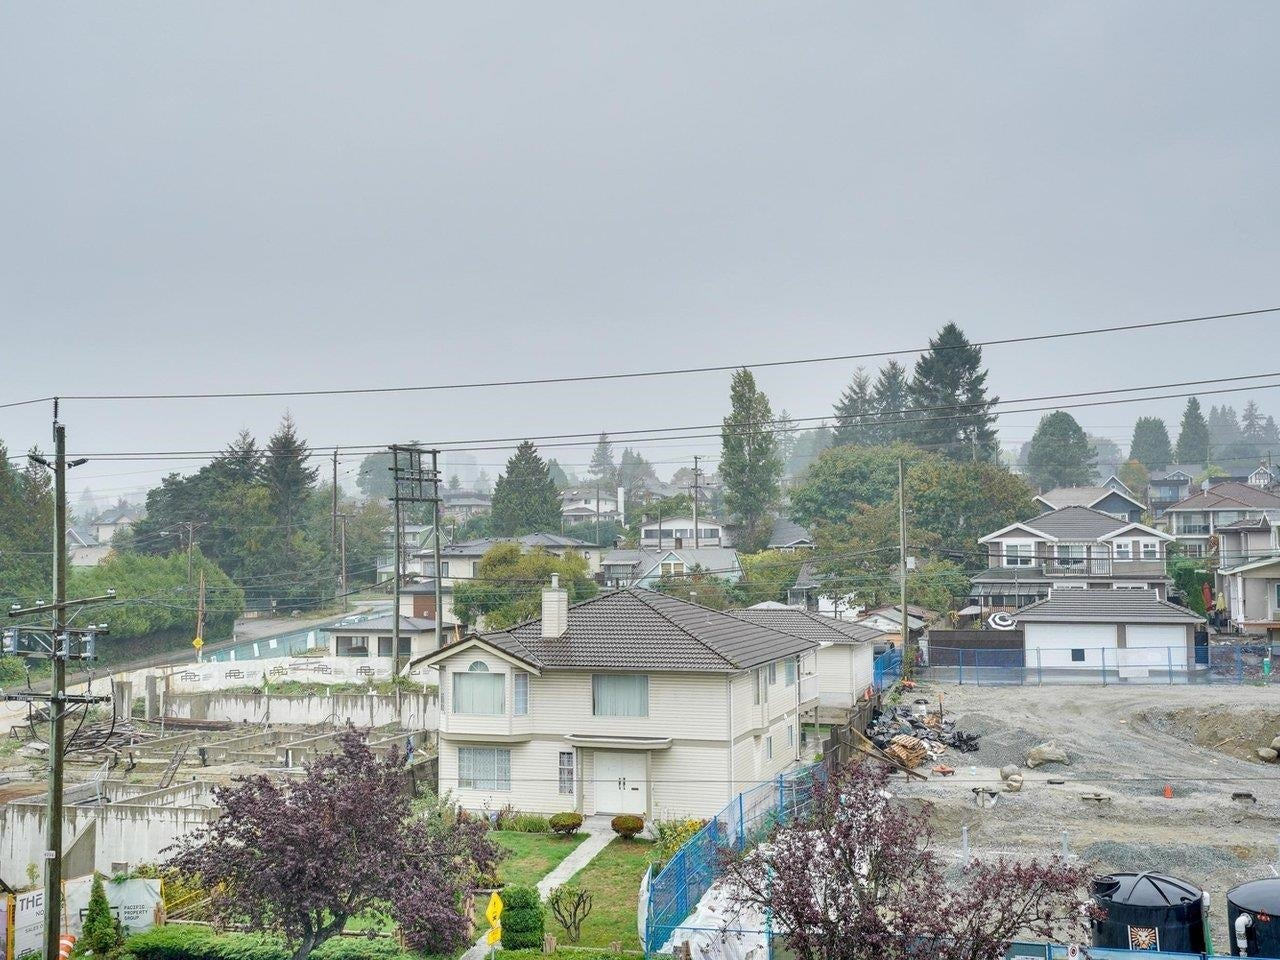 409 615 E 3RD STREET - Lower Lonsdale Apartment/Condo for sale, 2 Bedrooms (R2621616) - #10